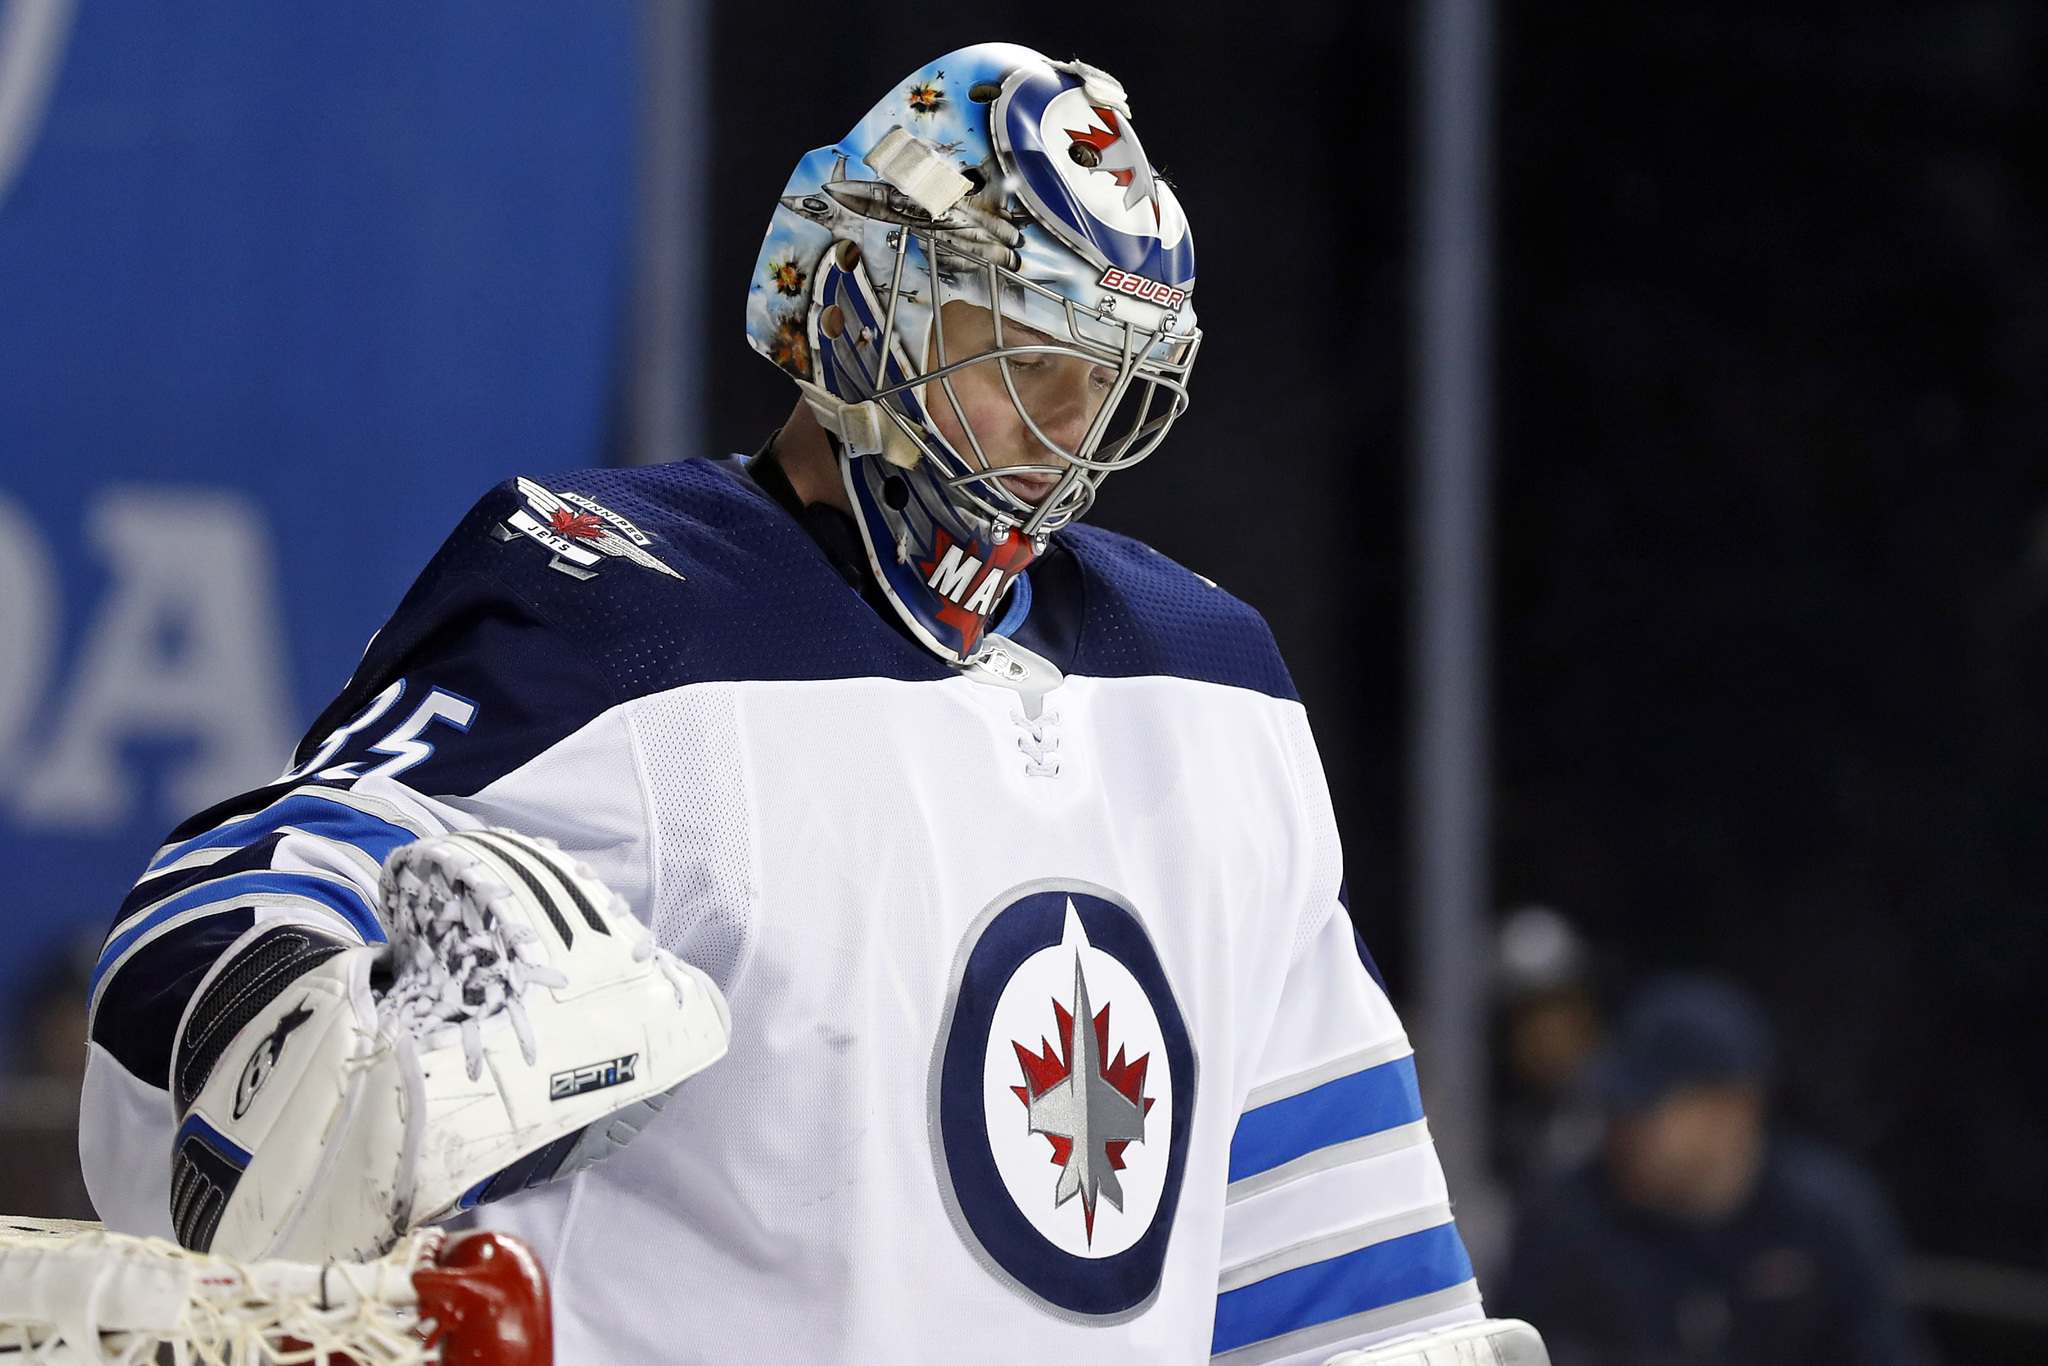 Jets coach has the ideal answer to Sharks players hating on Winnipeg